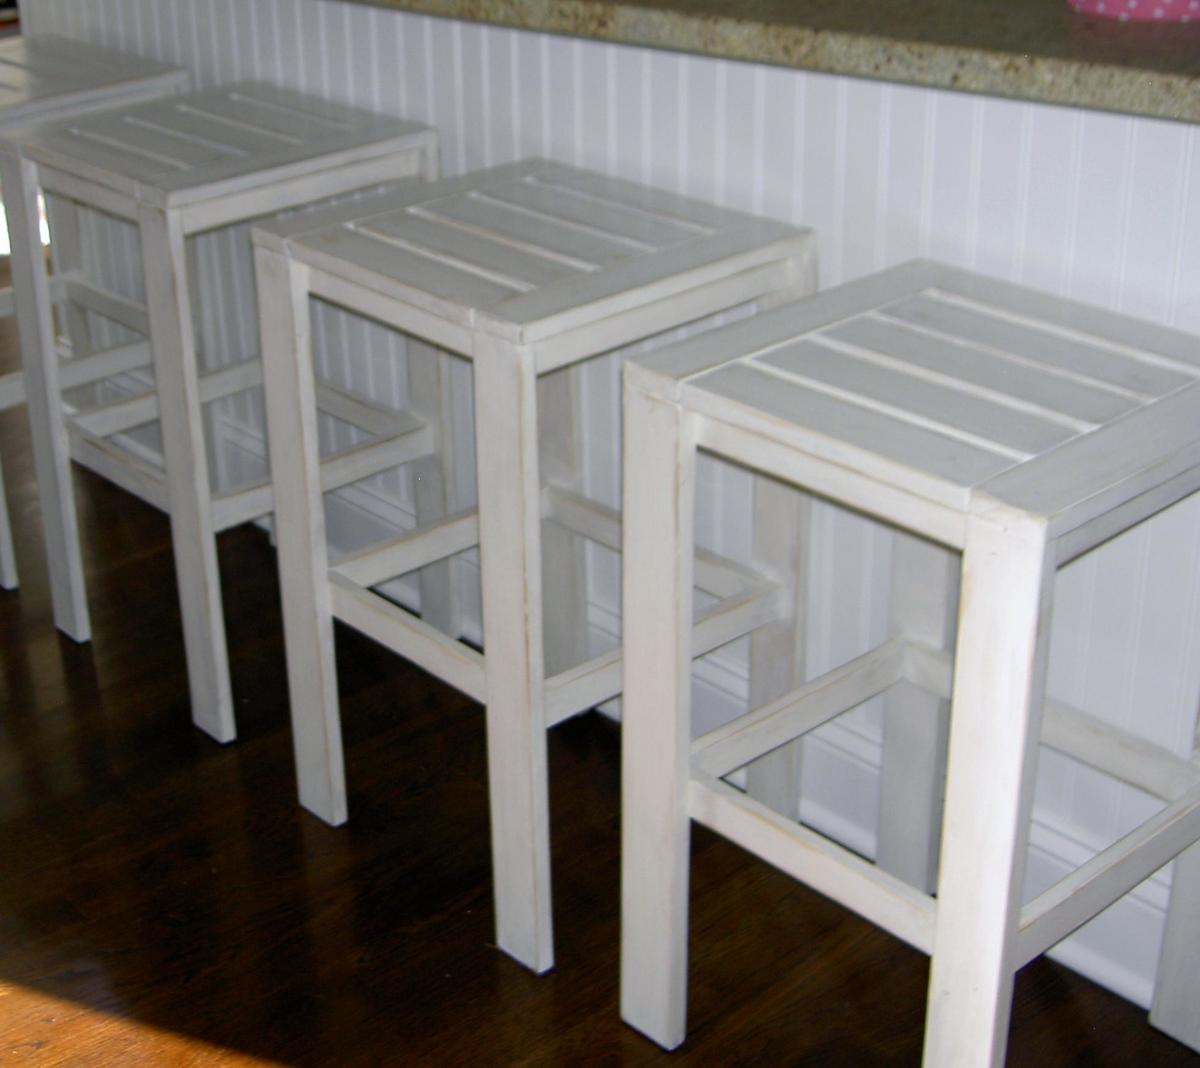 ana white stools for the bar table for the simple outdoor collection diy projects